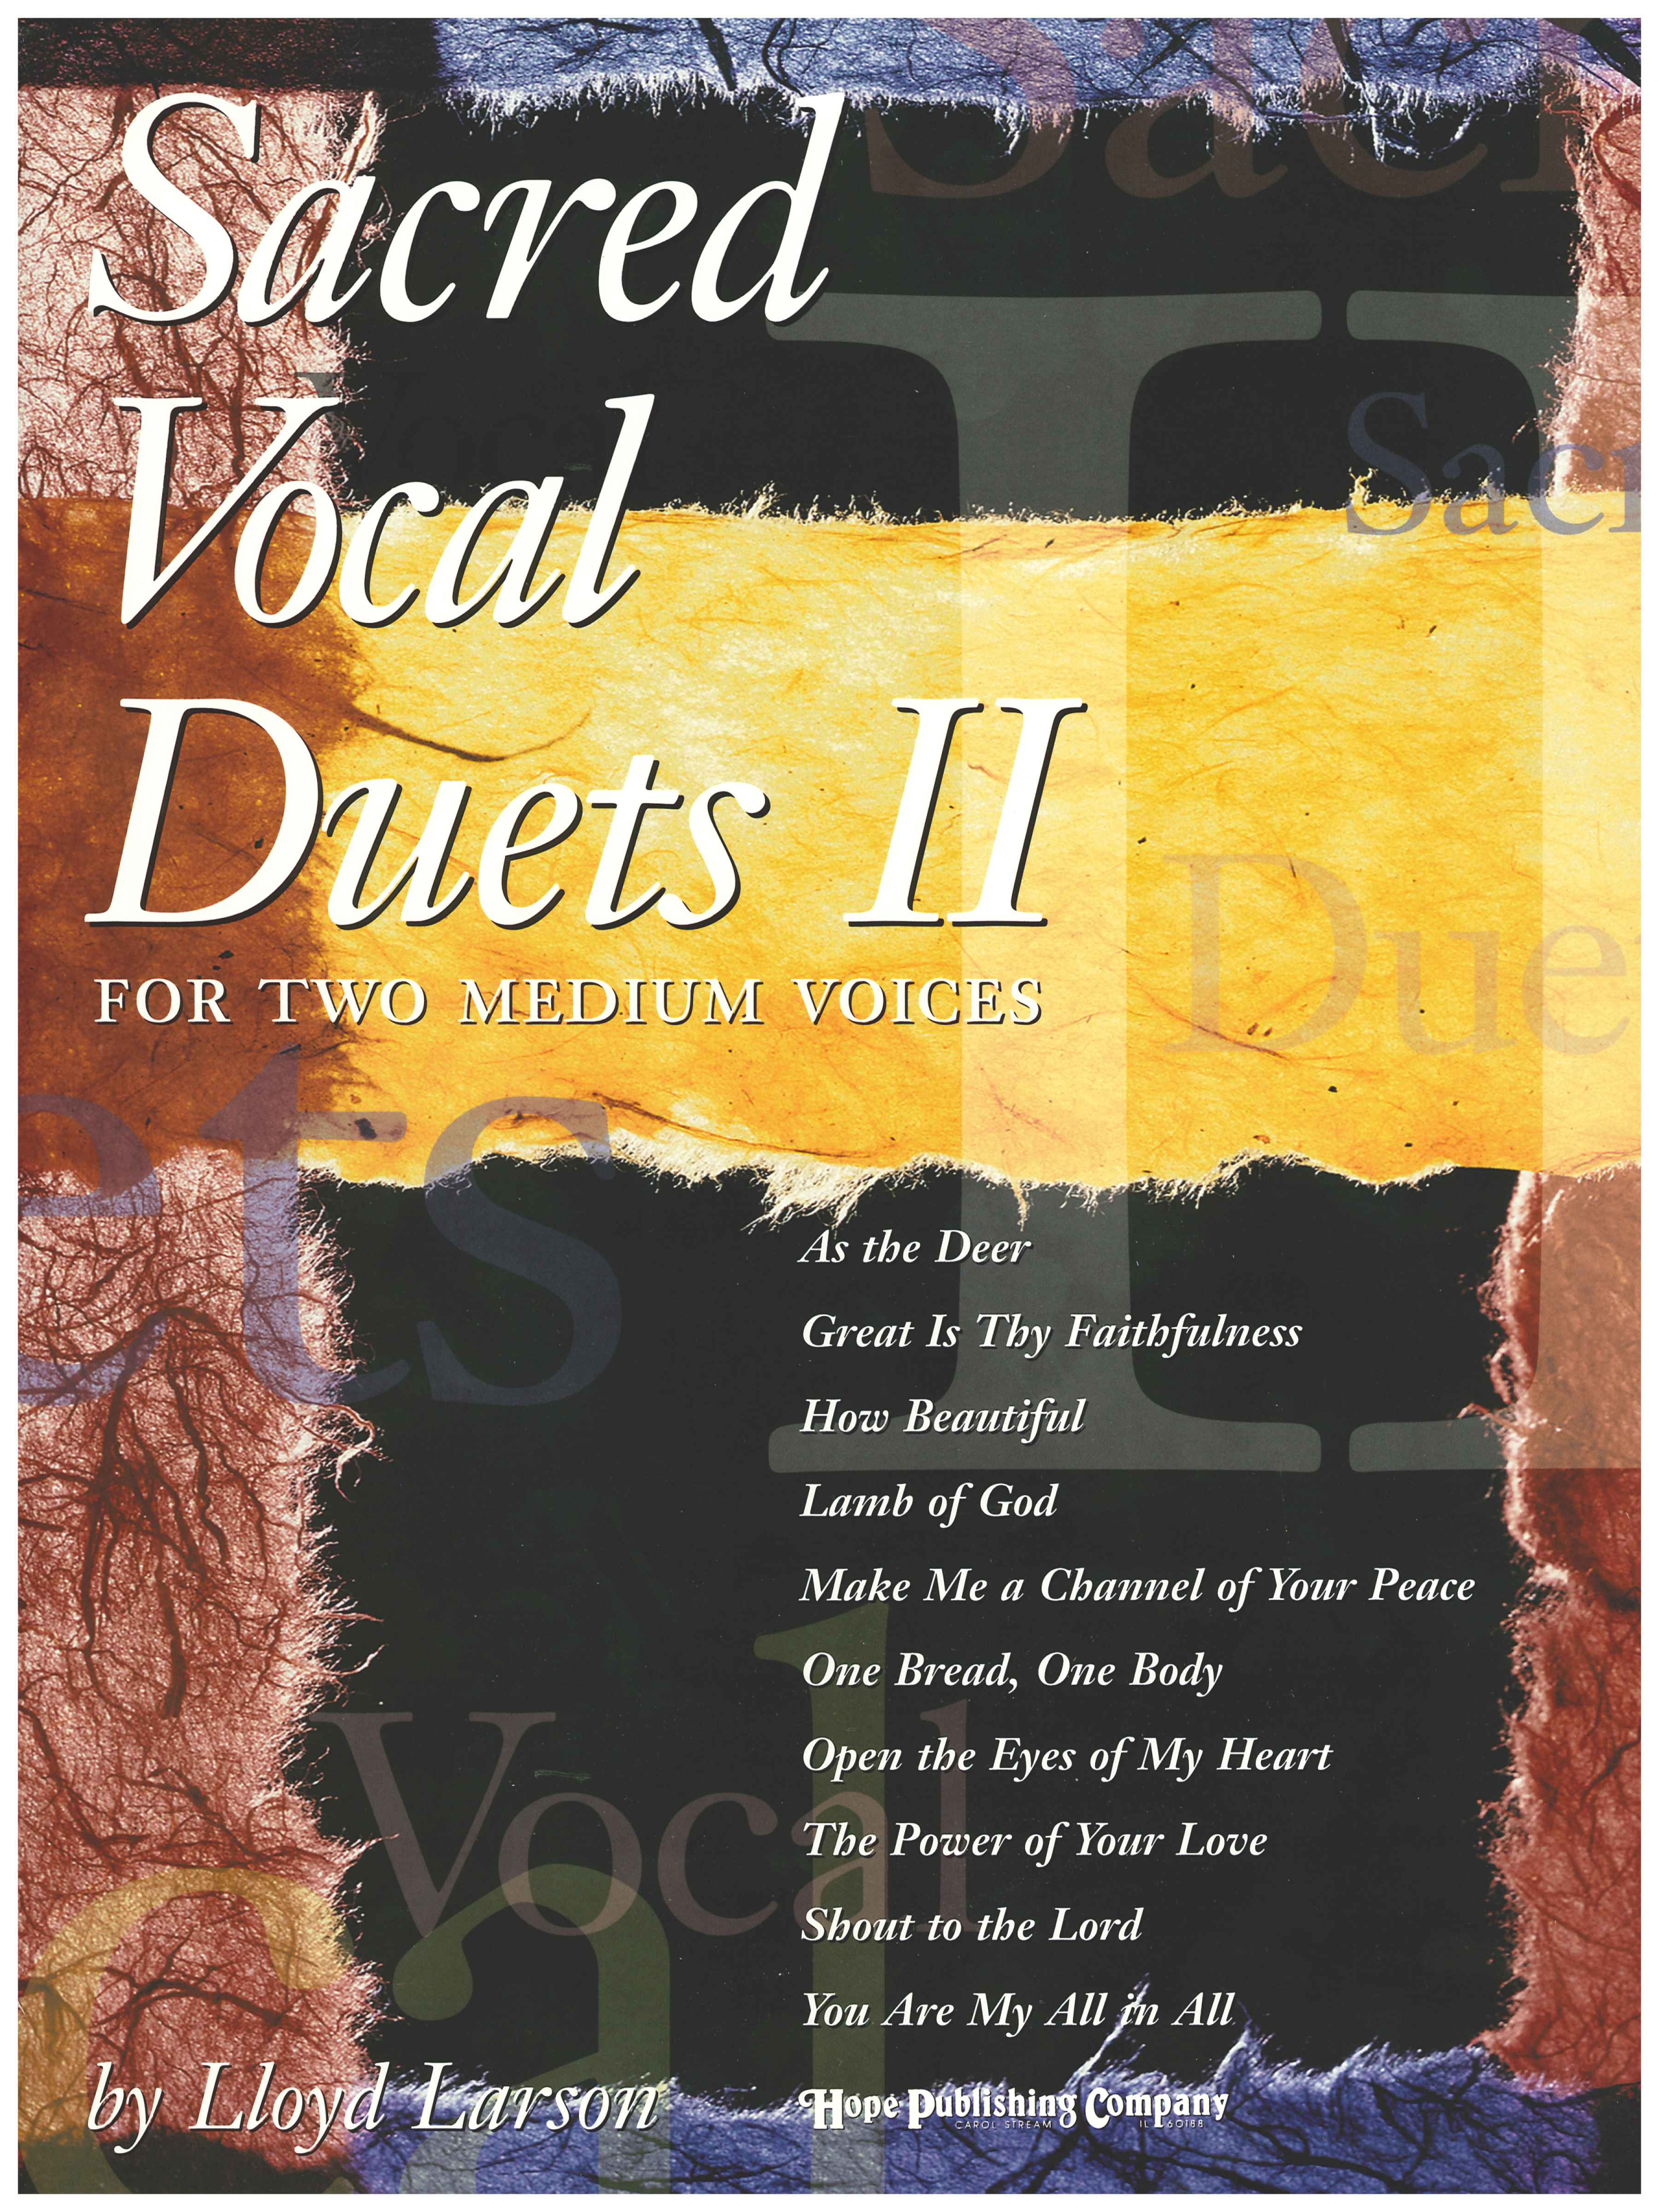 Sacred Vocal Duets II (2 Medium Voices) Cover Image